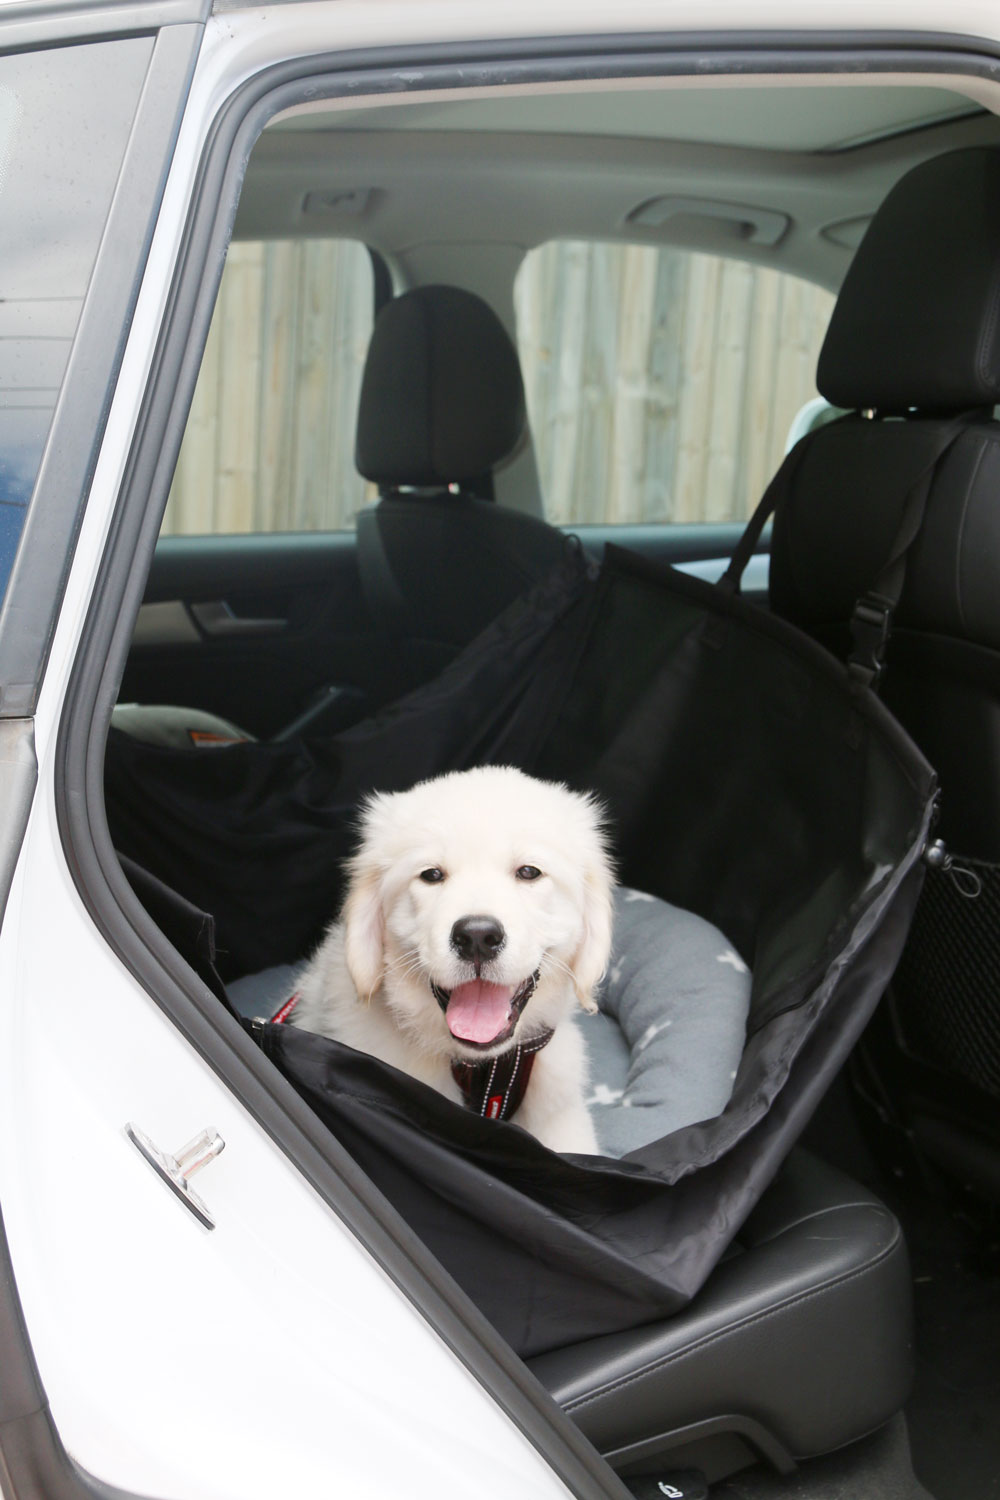 Keep your puppy safe and comfortable on a car trip with these 7 essentials for pet car travel. Budget friendly and practical, these must have items will give your puppy (and you!) the perfect trip home.